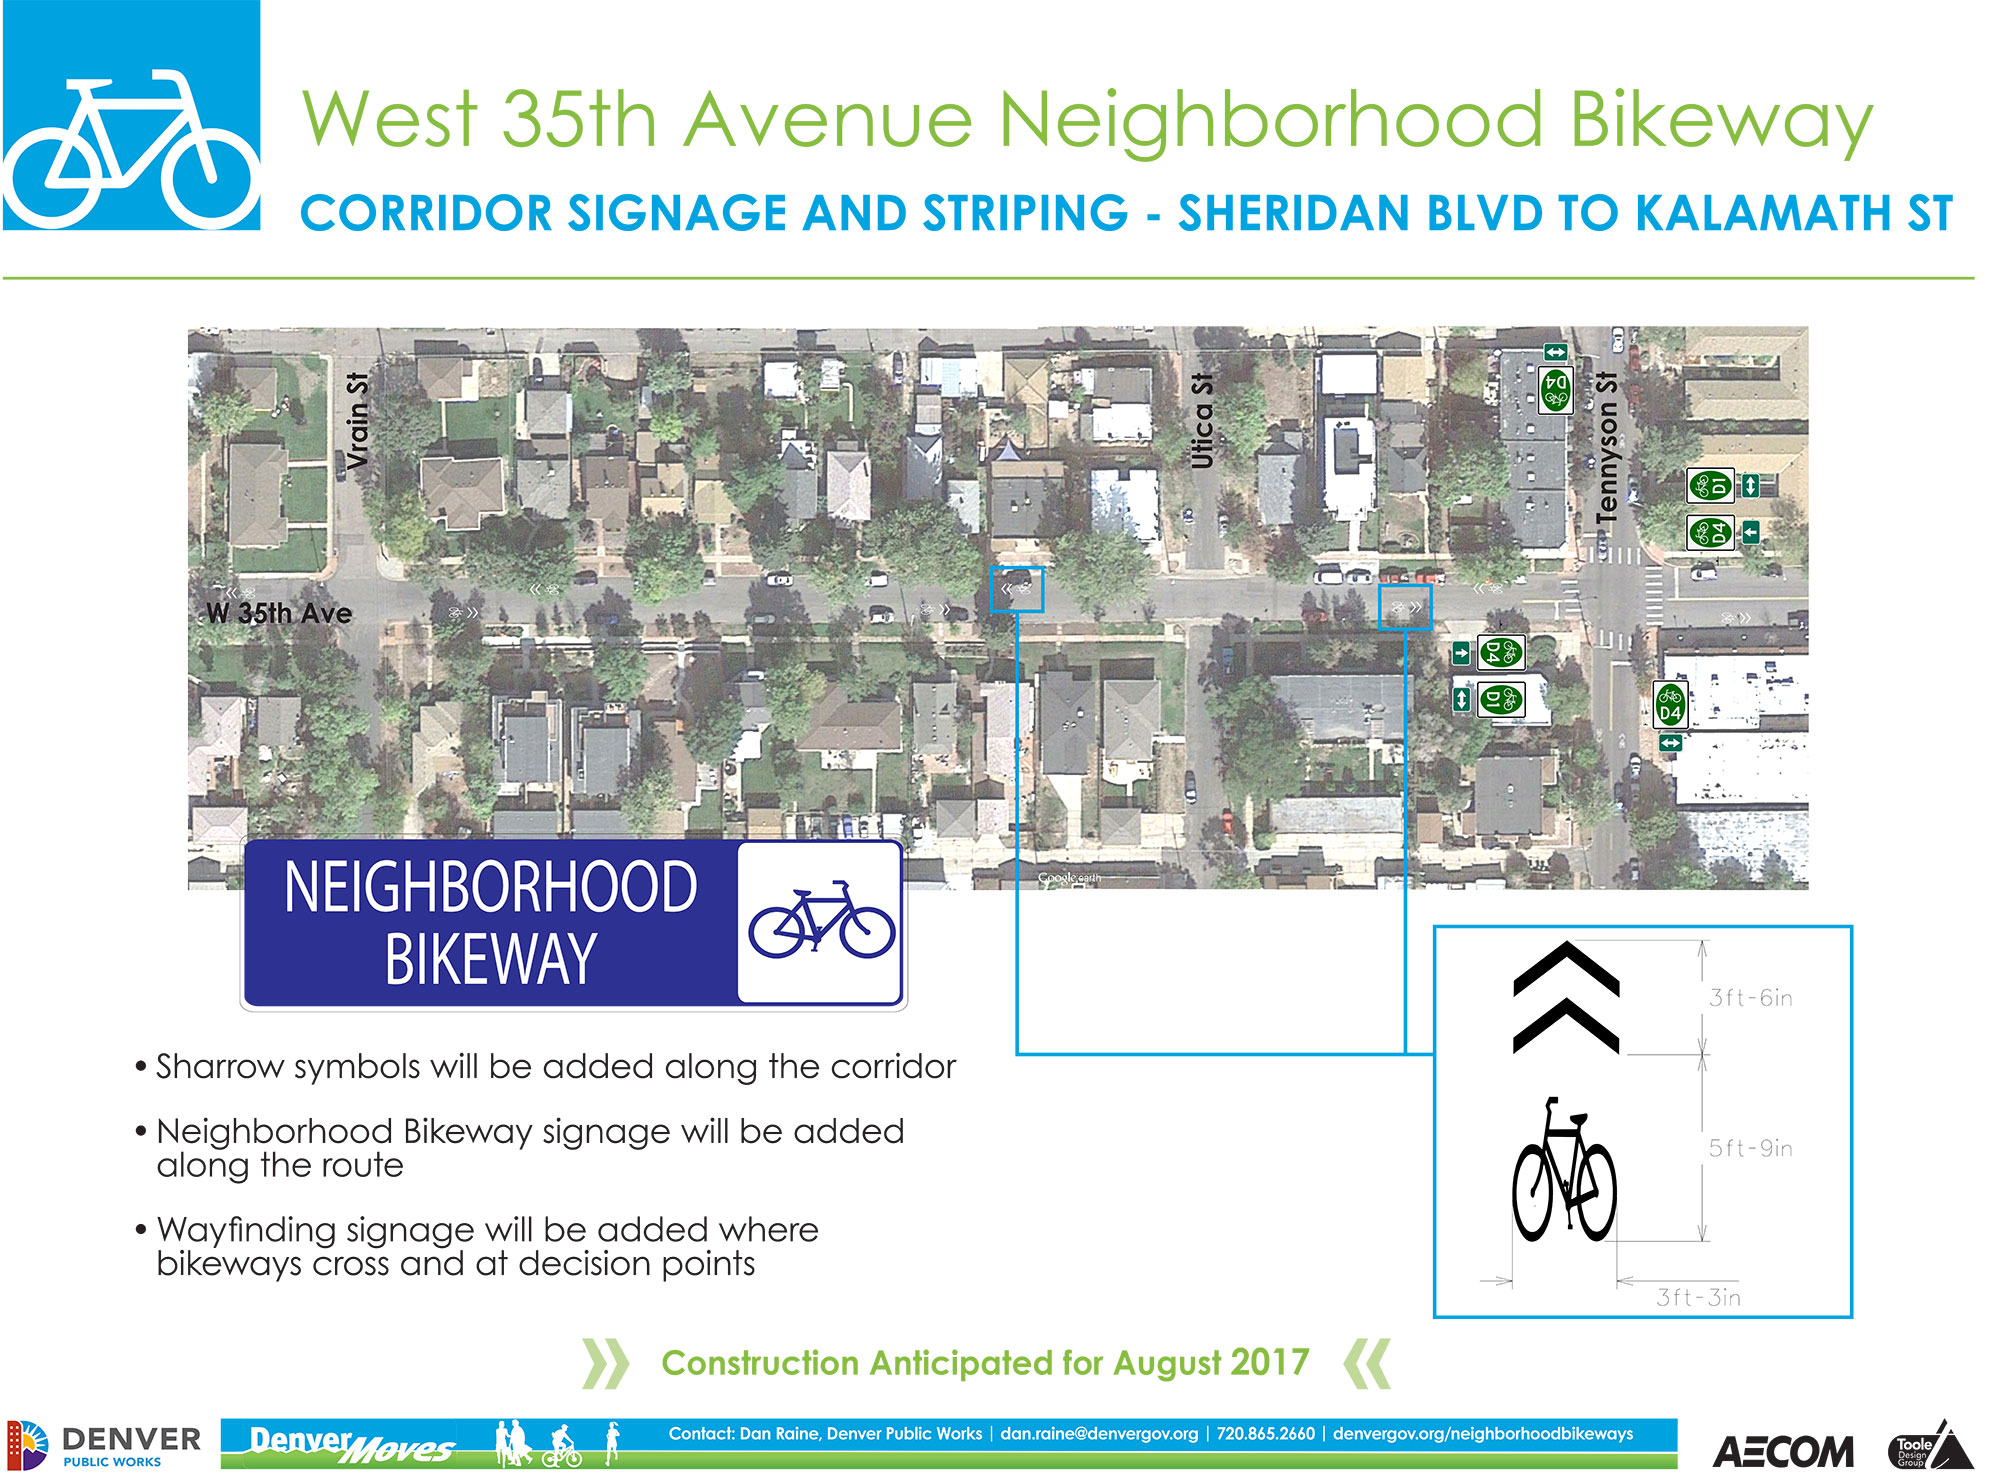 map showing proposed signs and street markings for W 35th Ave